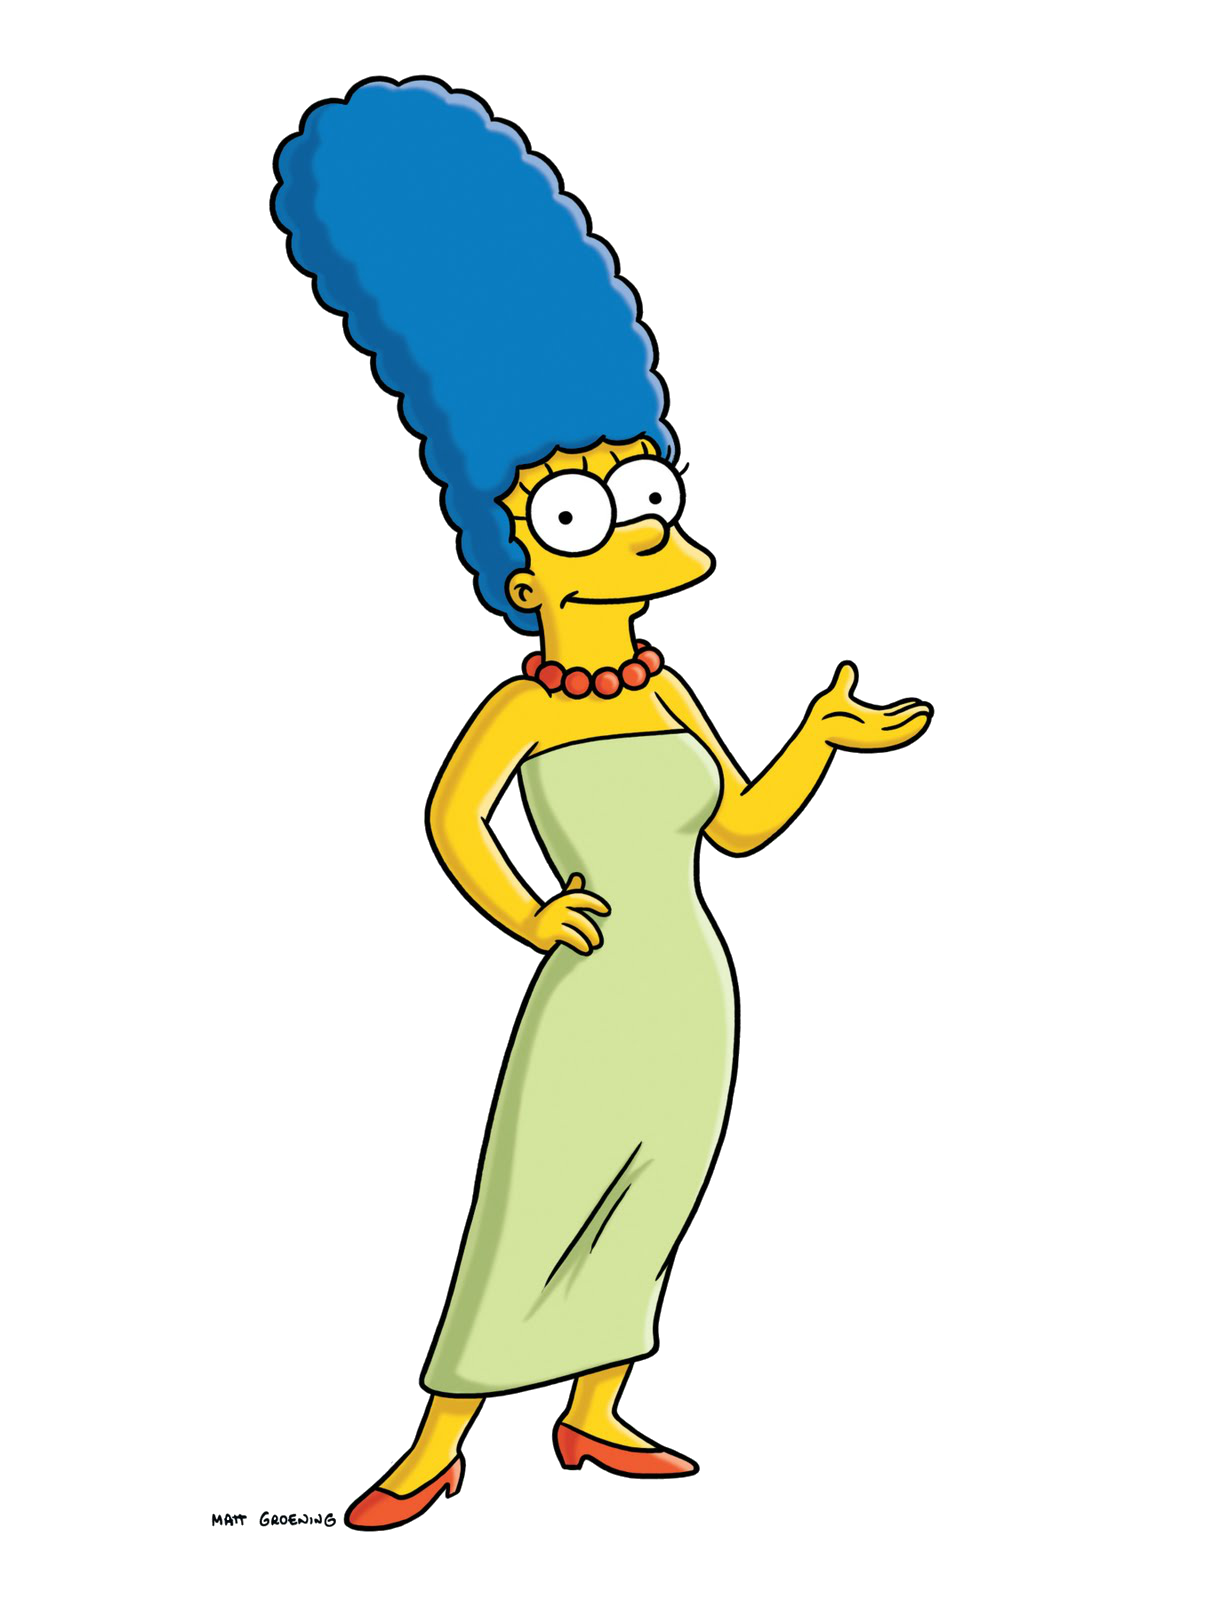 Couch clipart simpsons. Marge simpson pinterest cartoon